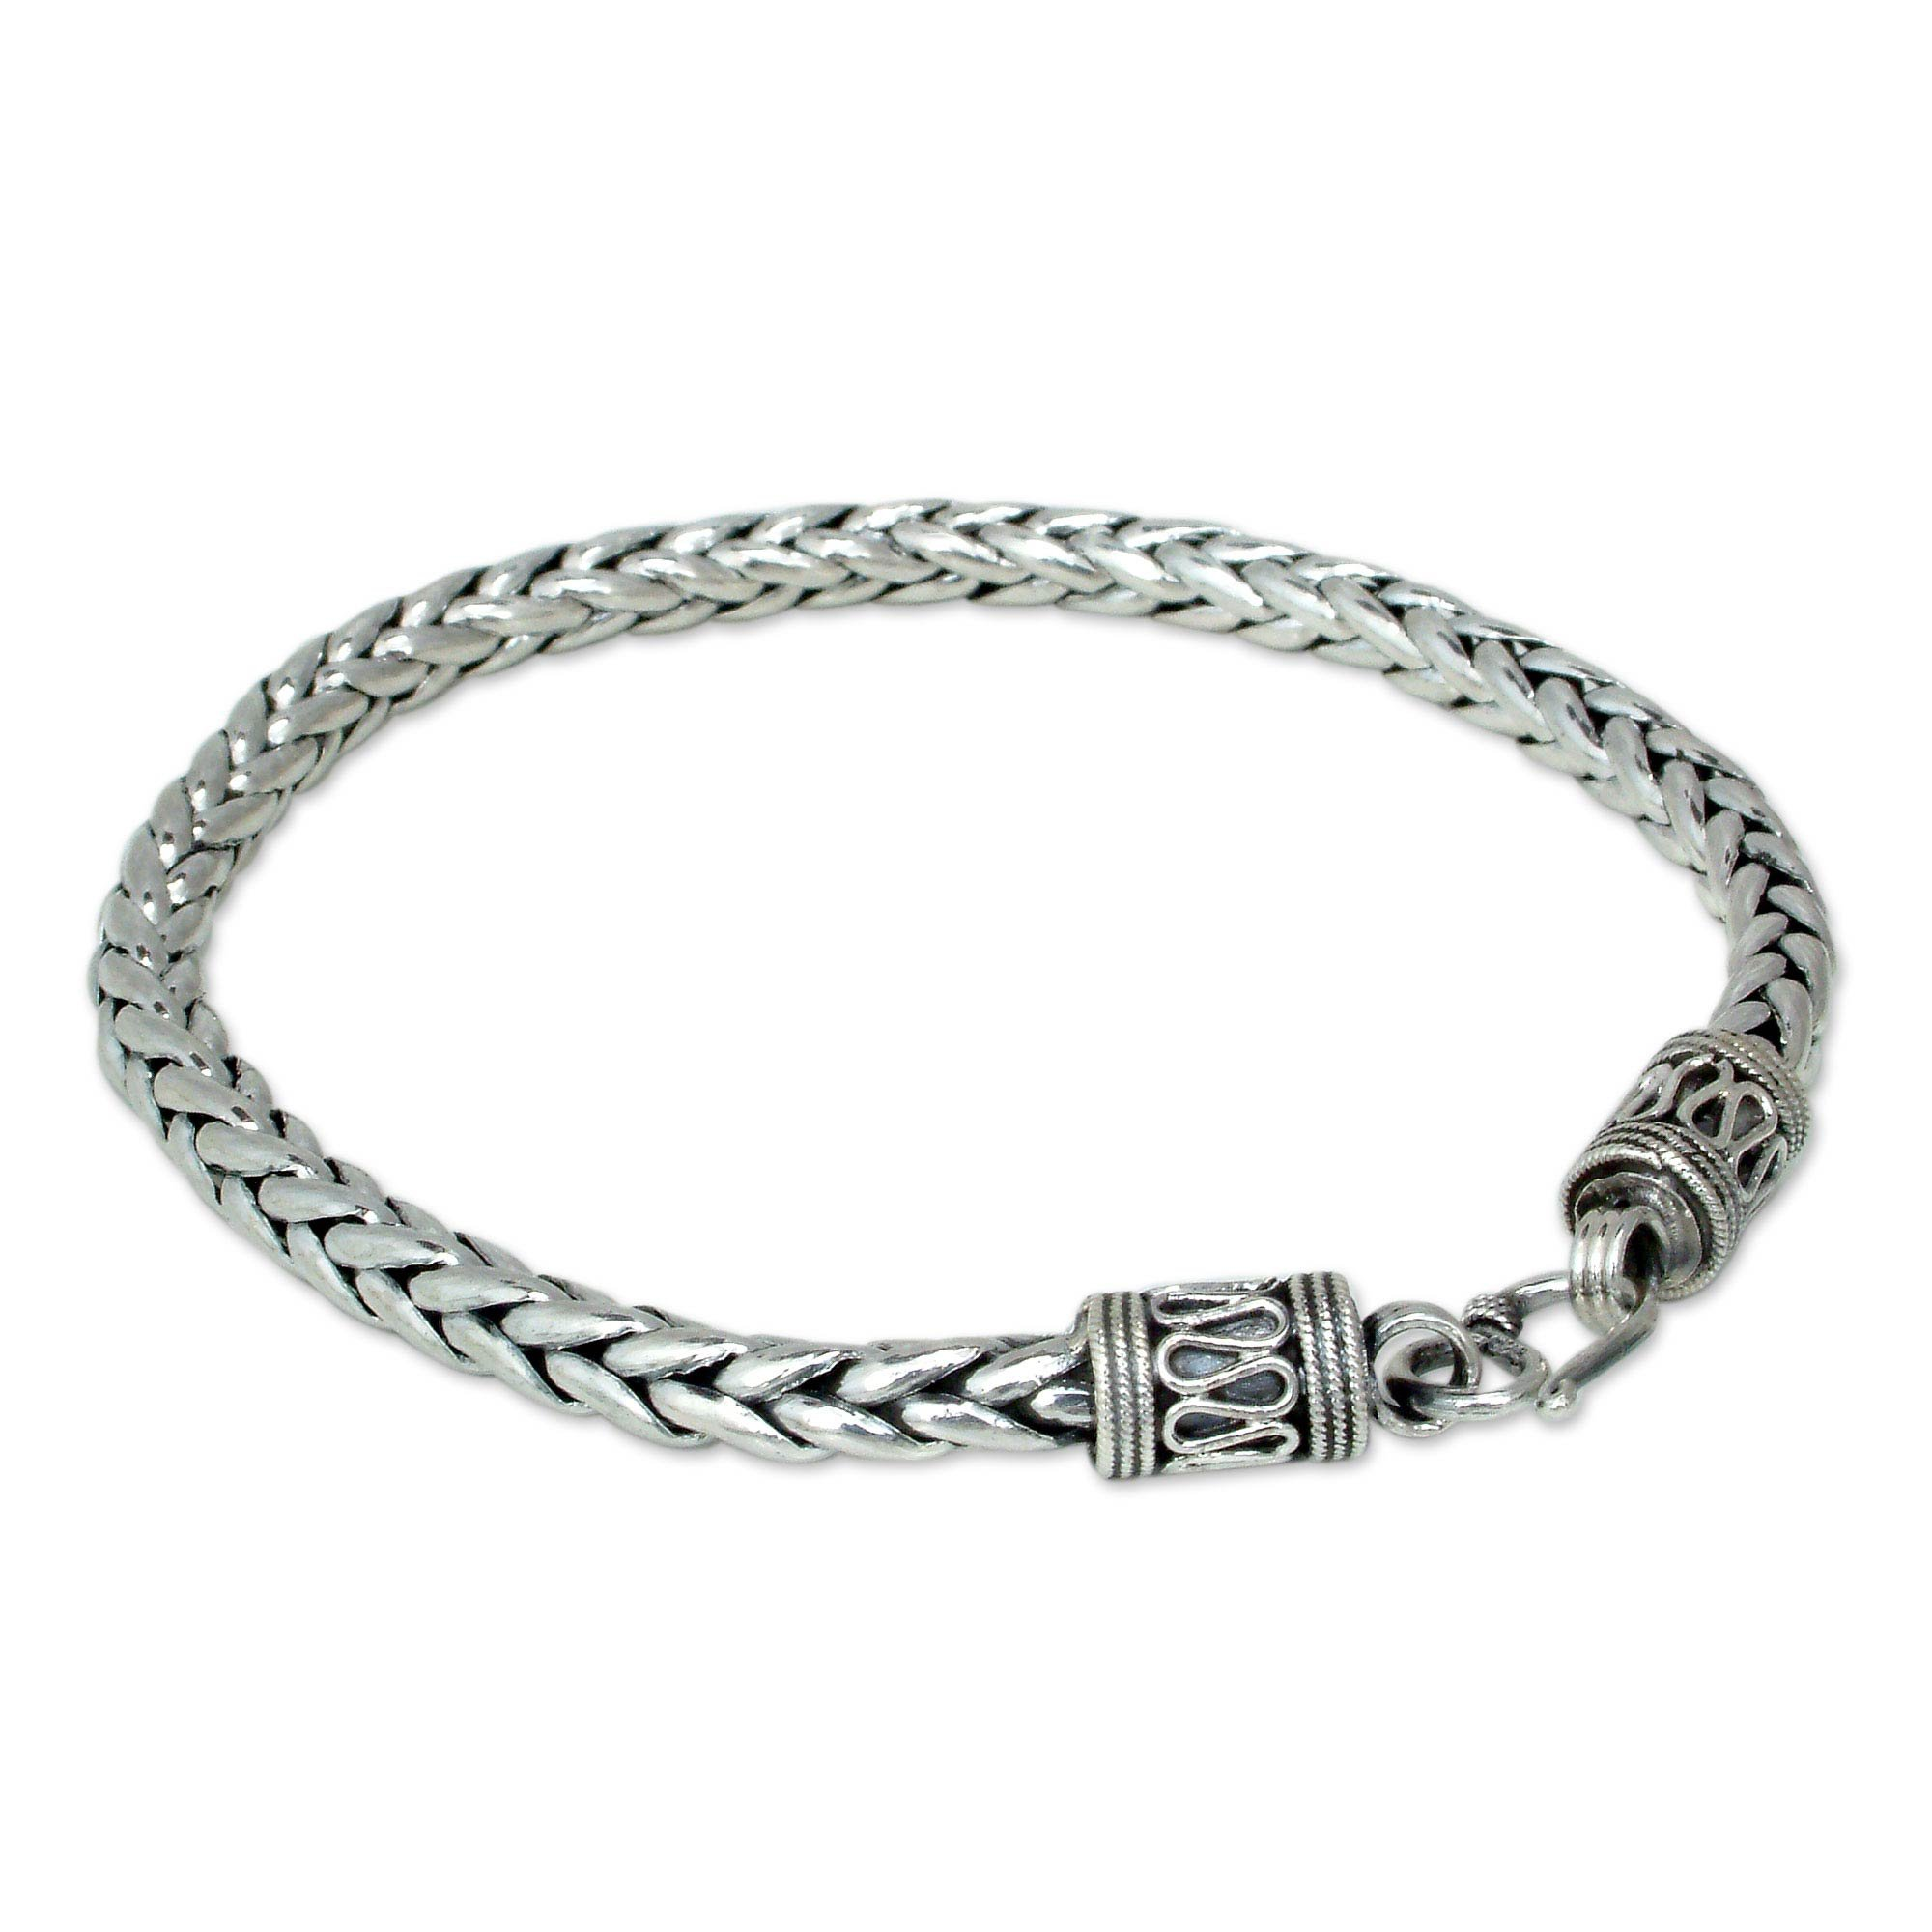 NOVICA Men's .925 Sterling Silver Handmade Chain Bracelet, 8.75'' 'Strength'